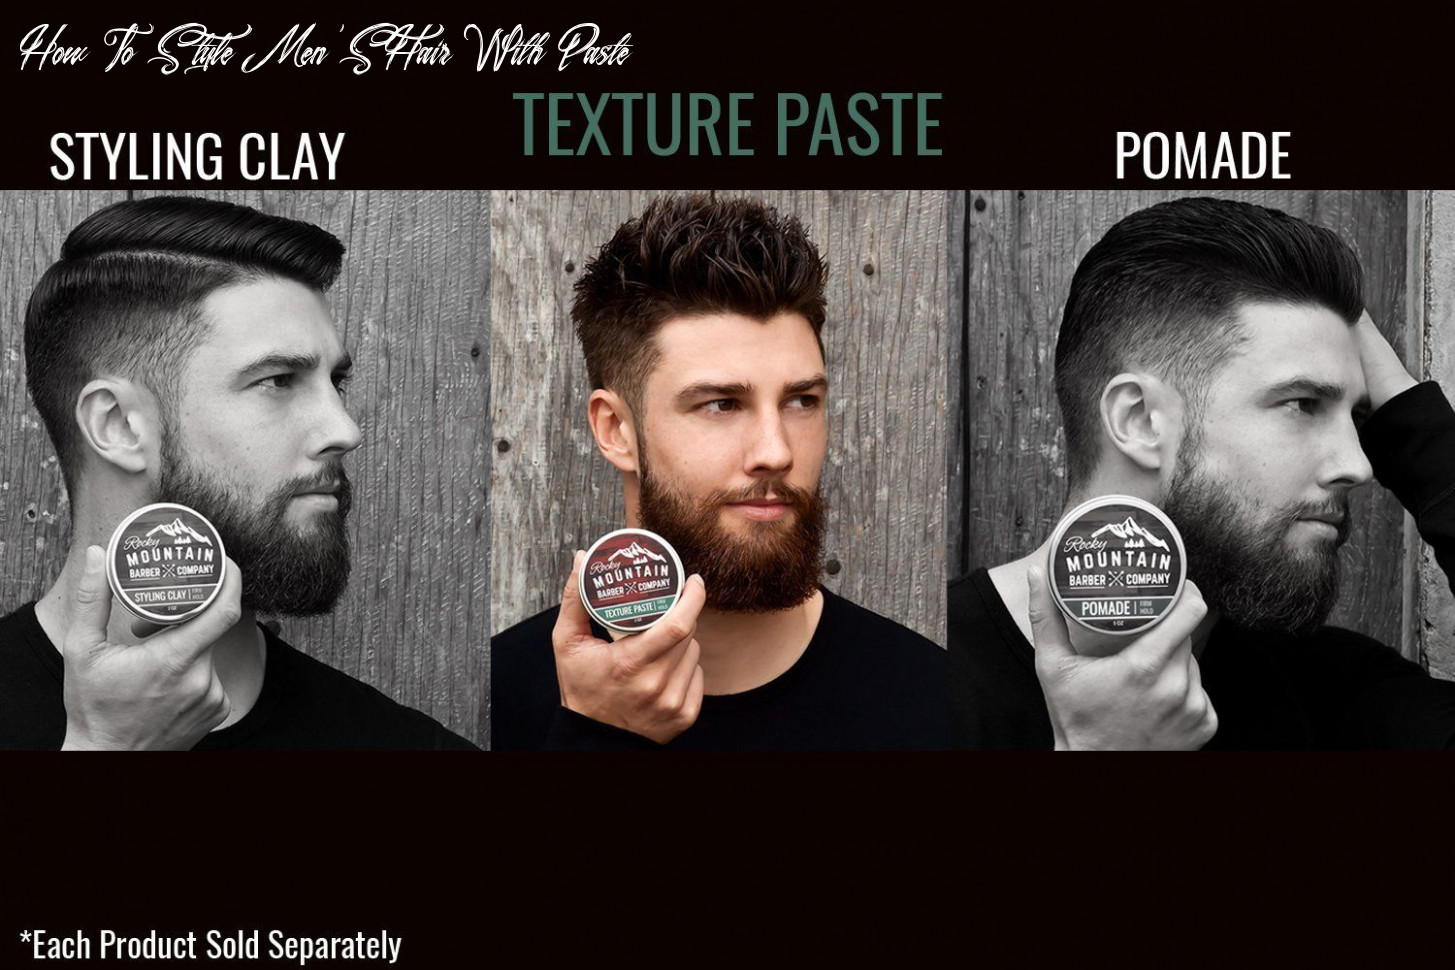 Texture paste for men – canadian made hair styling cream with